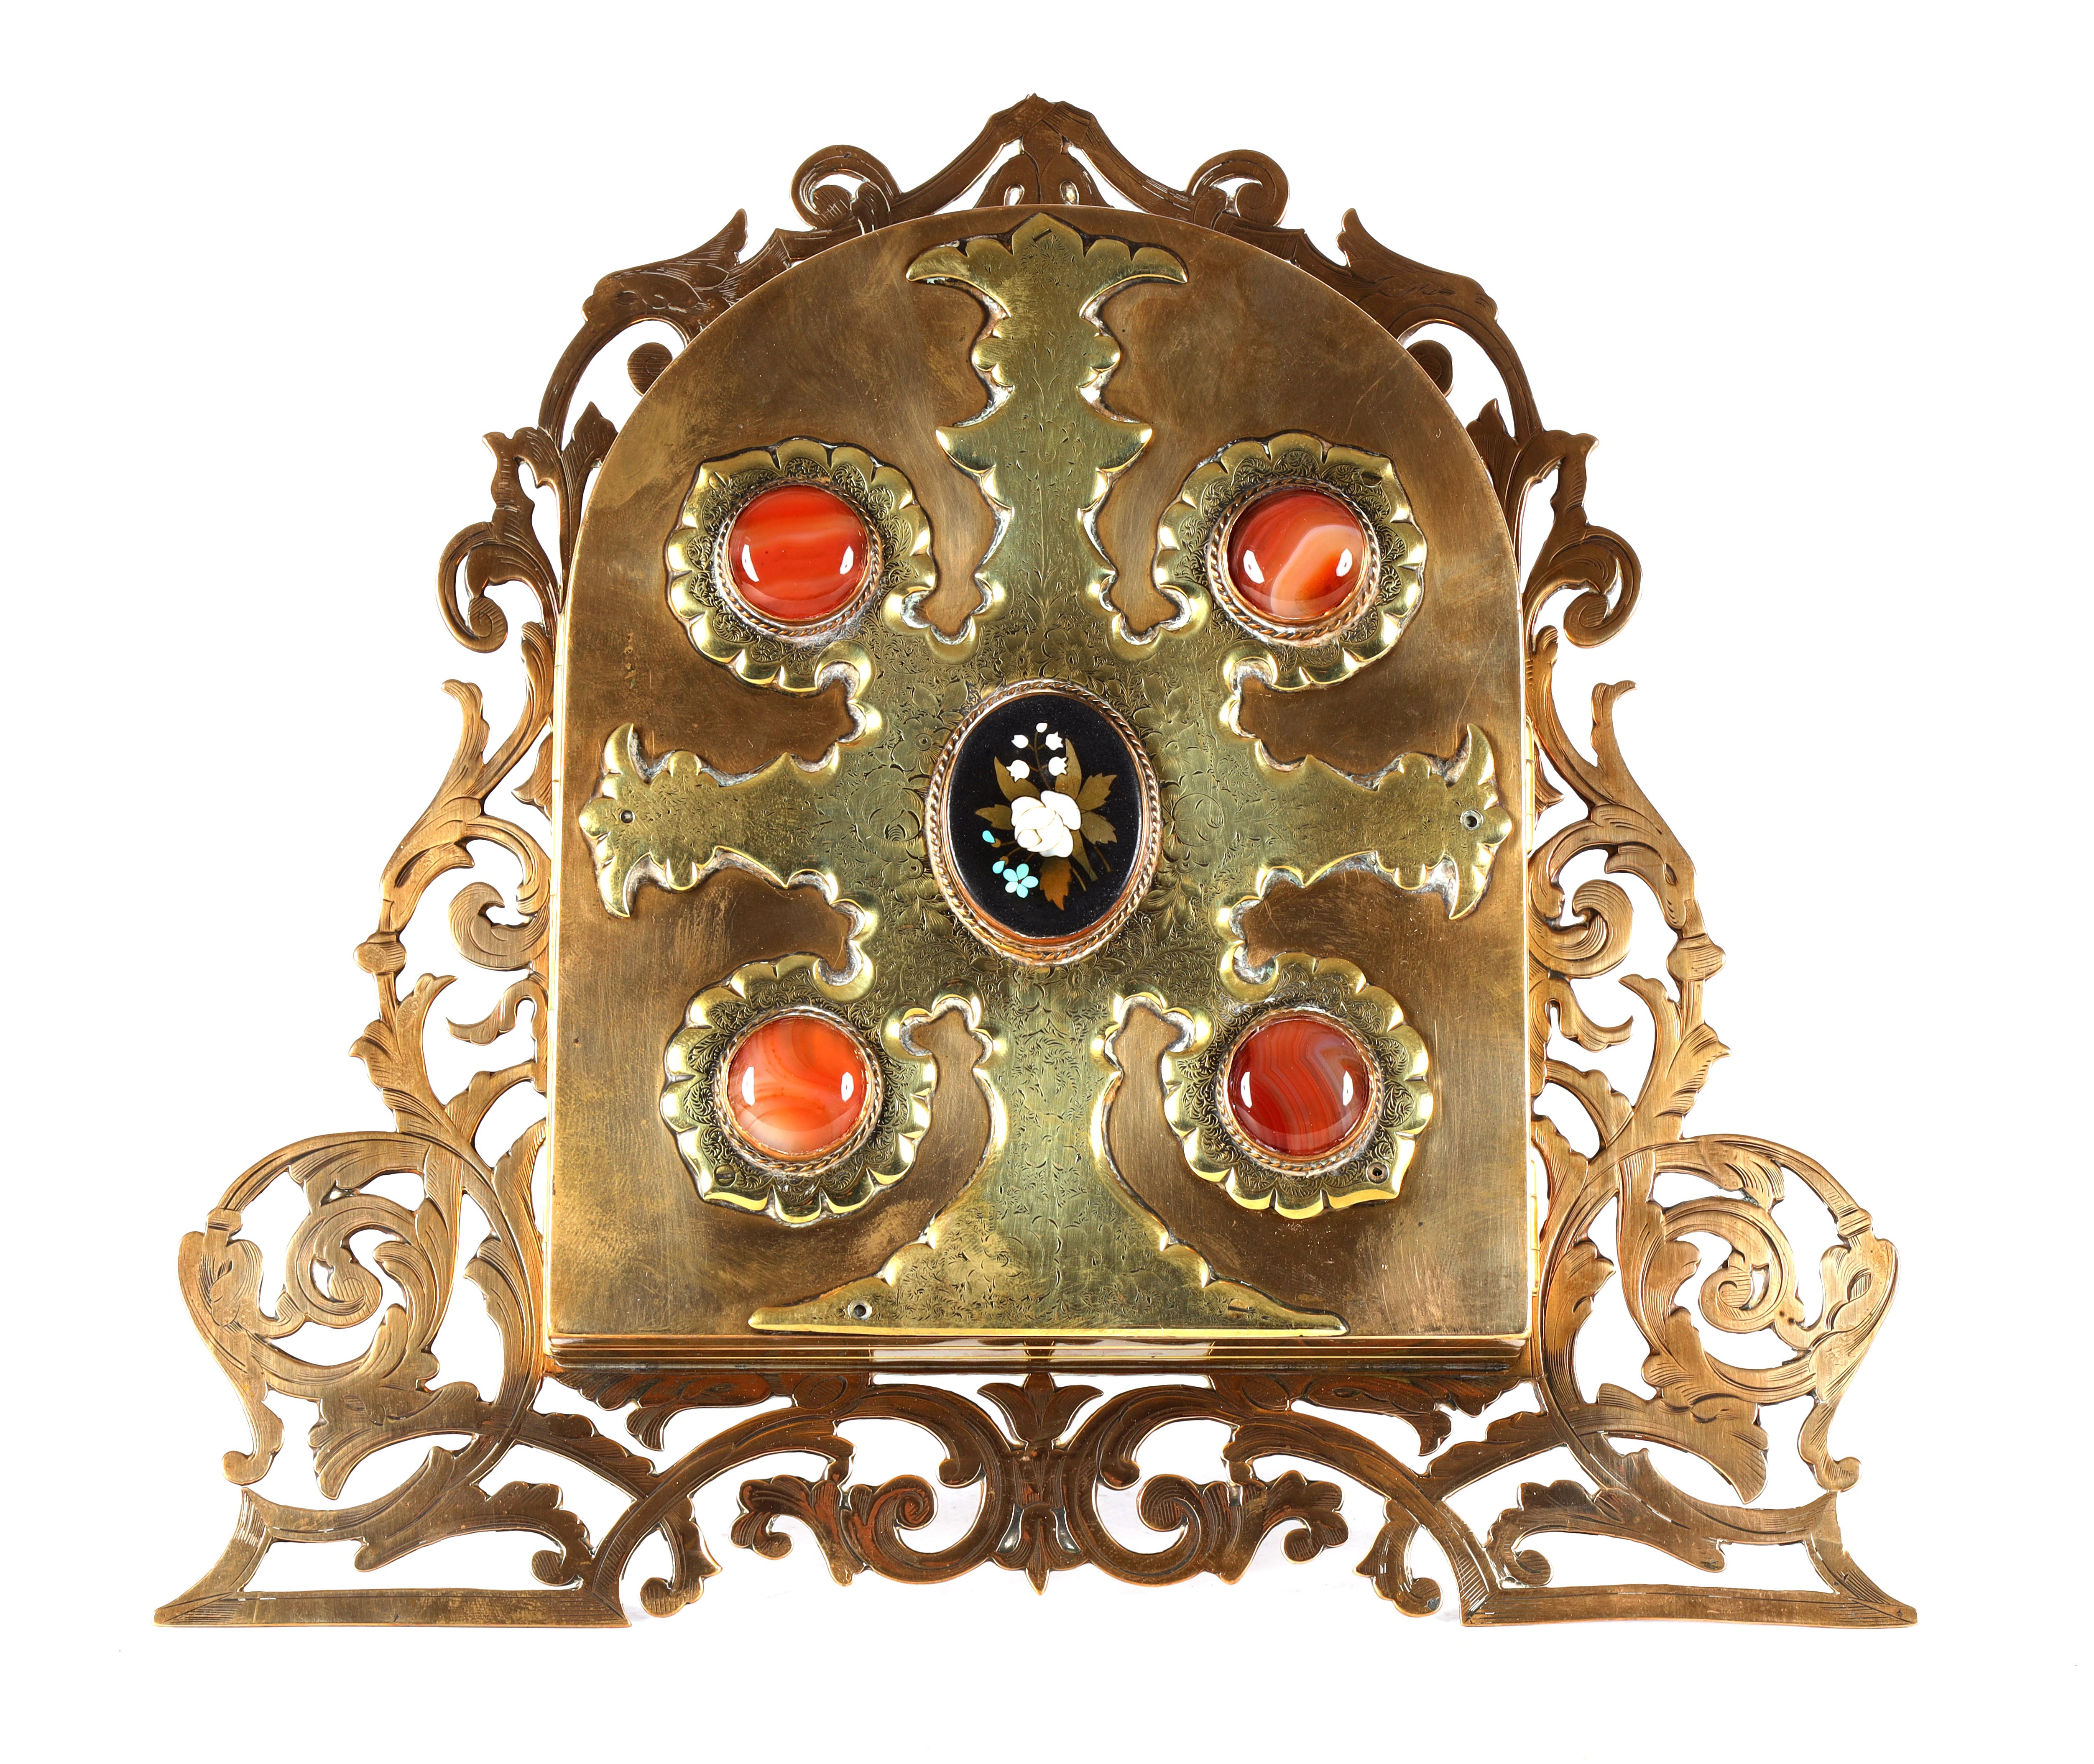 A LATE 19TH CENTURY PIERCED AND ENGRAVED BRONZE FOLDING PHOTOGRAPH FRAME the front with four